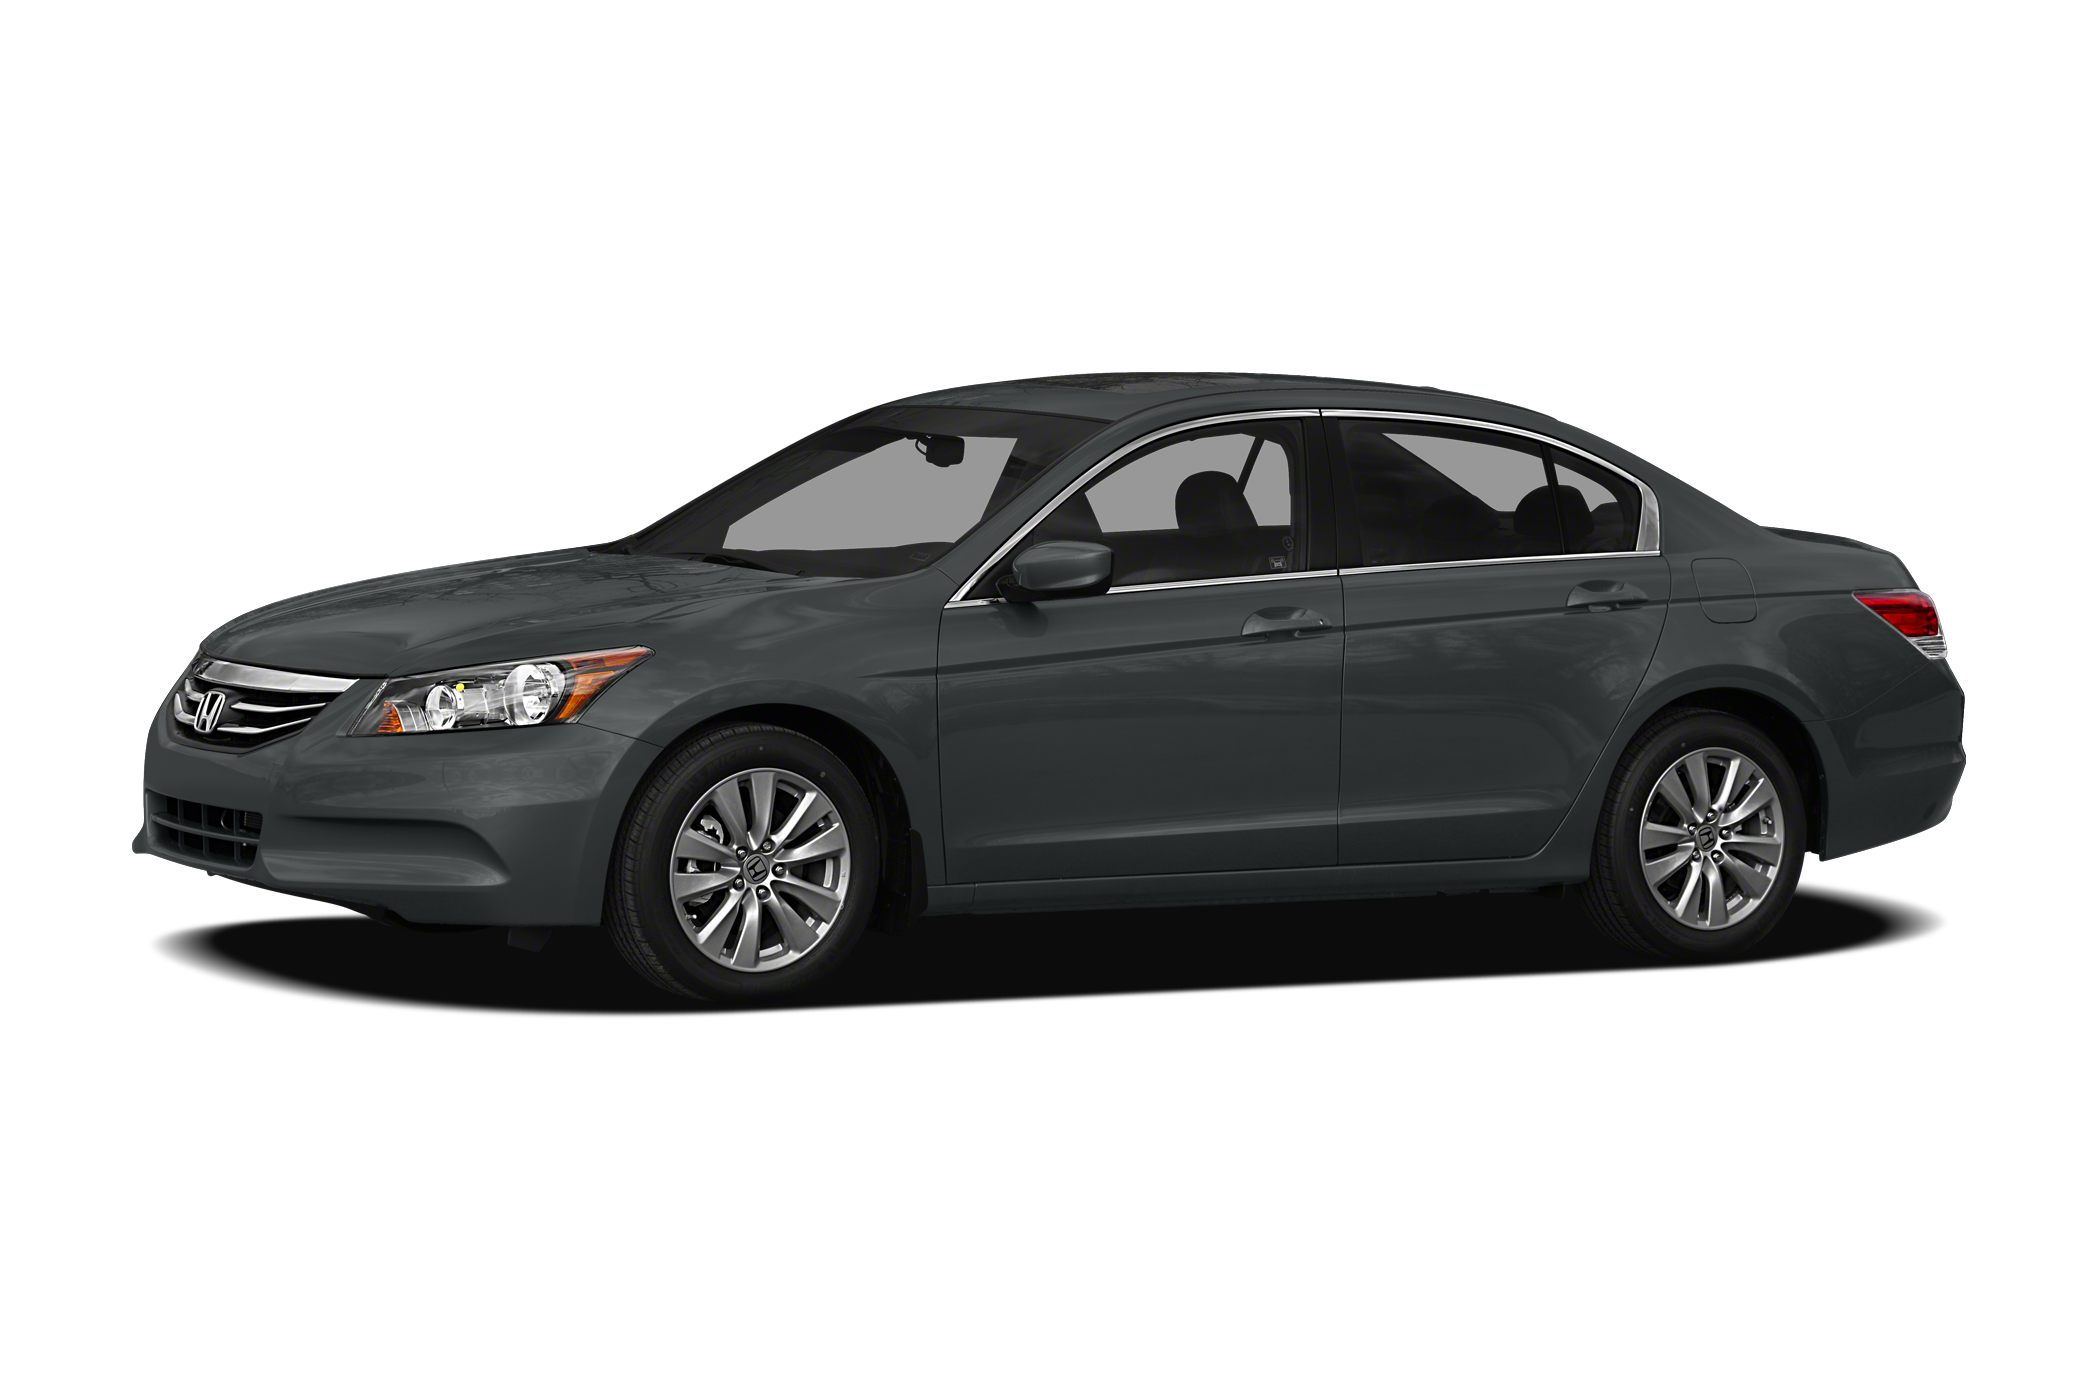 2011 Honda Accord 24 LX-P THIS VEHICLE COMES WITH OUR BEST PRICE GUARANTEE FIND A BETTER ON A S